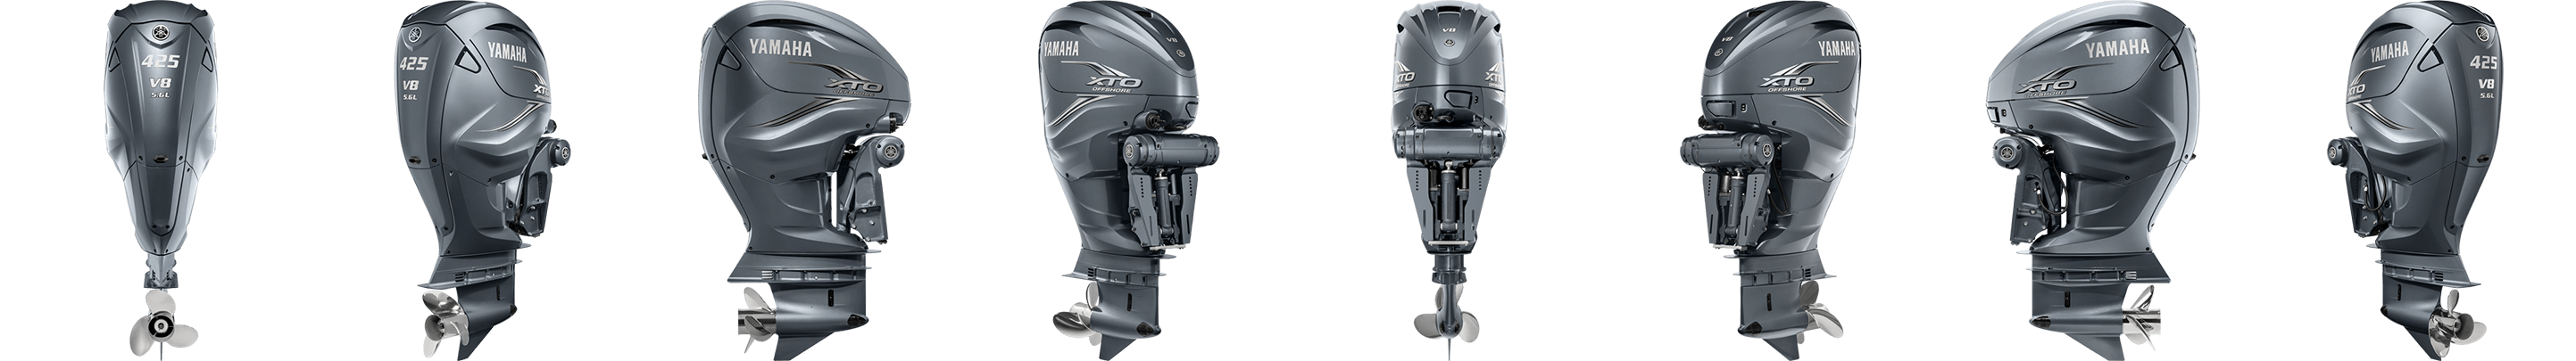 V8 56l Yamaha Outboards Xt200 Wiring Diagram White Gray